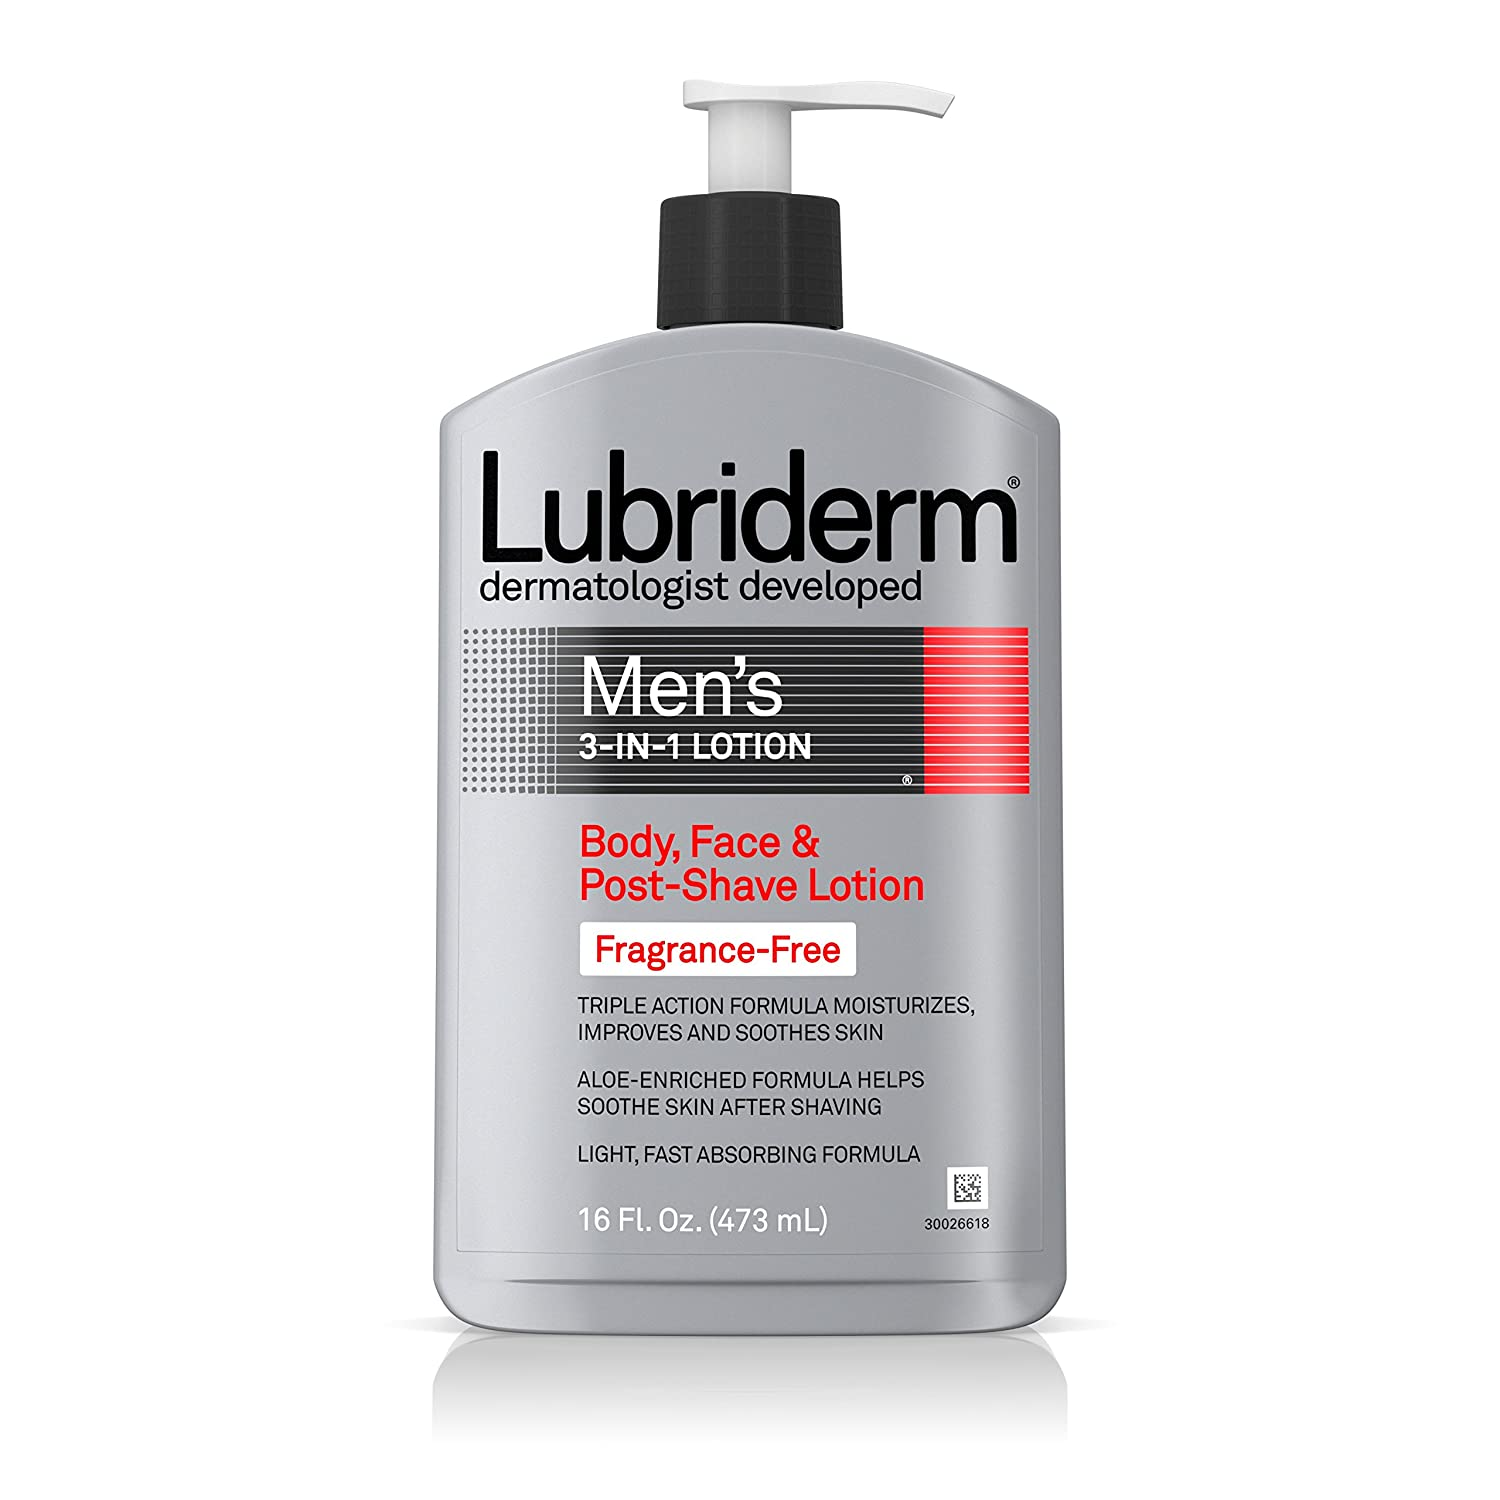 Lubriderm Men's 3-In-1 Unscented Lotion Enriched with Soothing Aloe for Body and Face, Non-Greasy Post Shave Moisturizer, Fragrance-Free, 16 fl. oz 052800480735